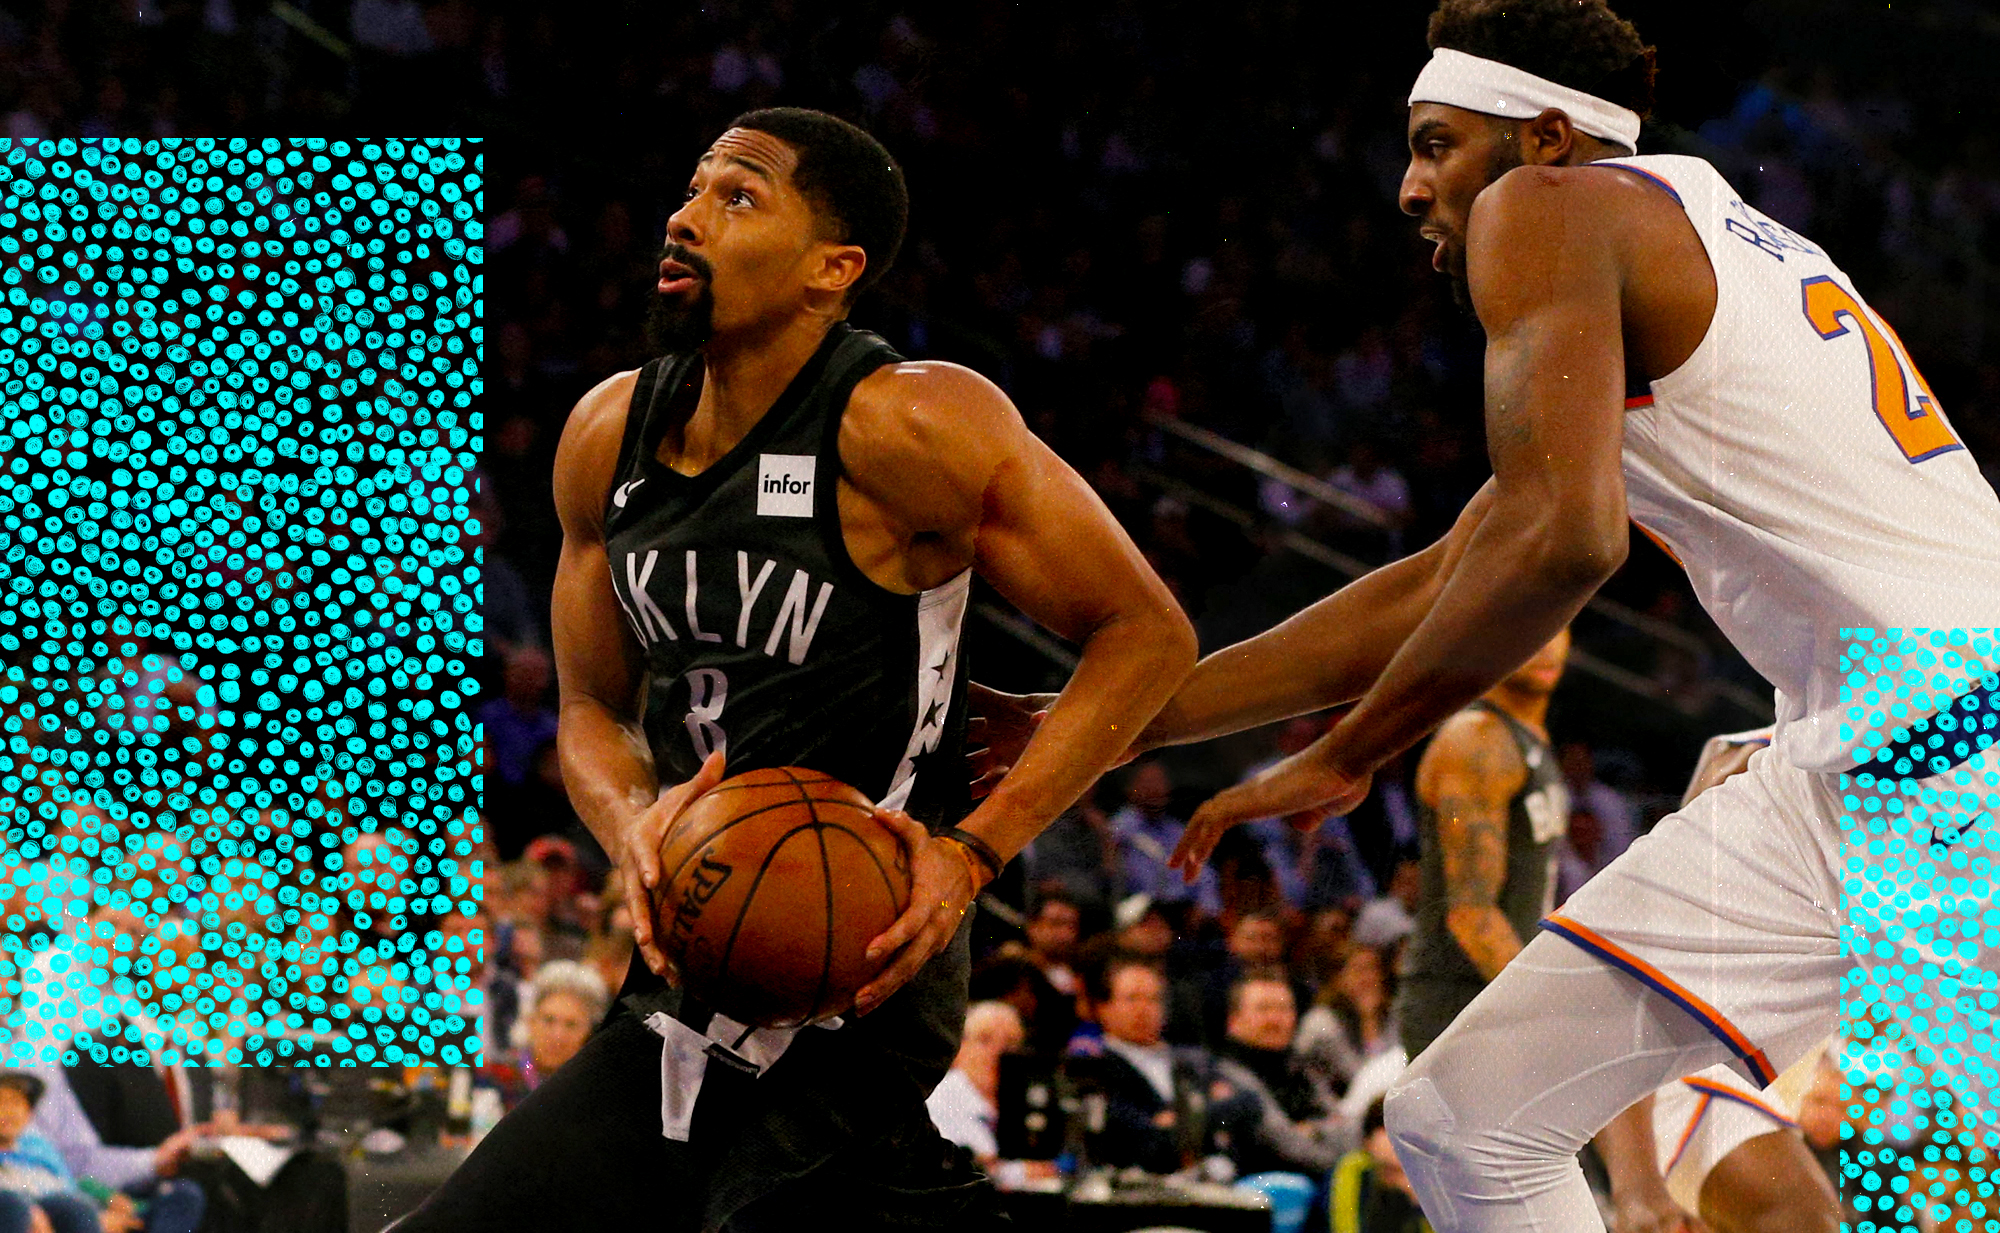 We might be watching the Knicks and Nets switch places right before our eyes